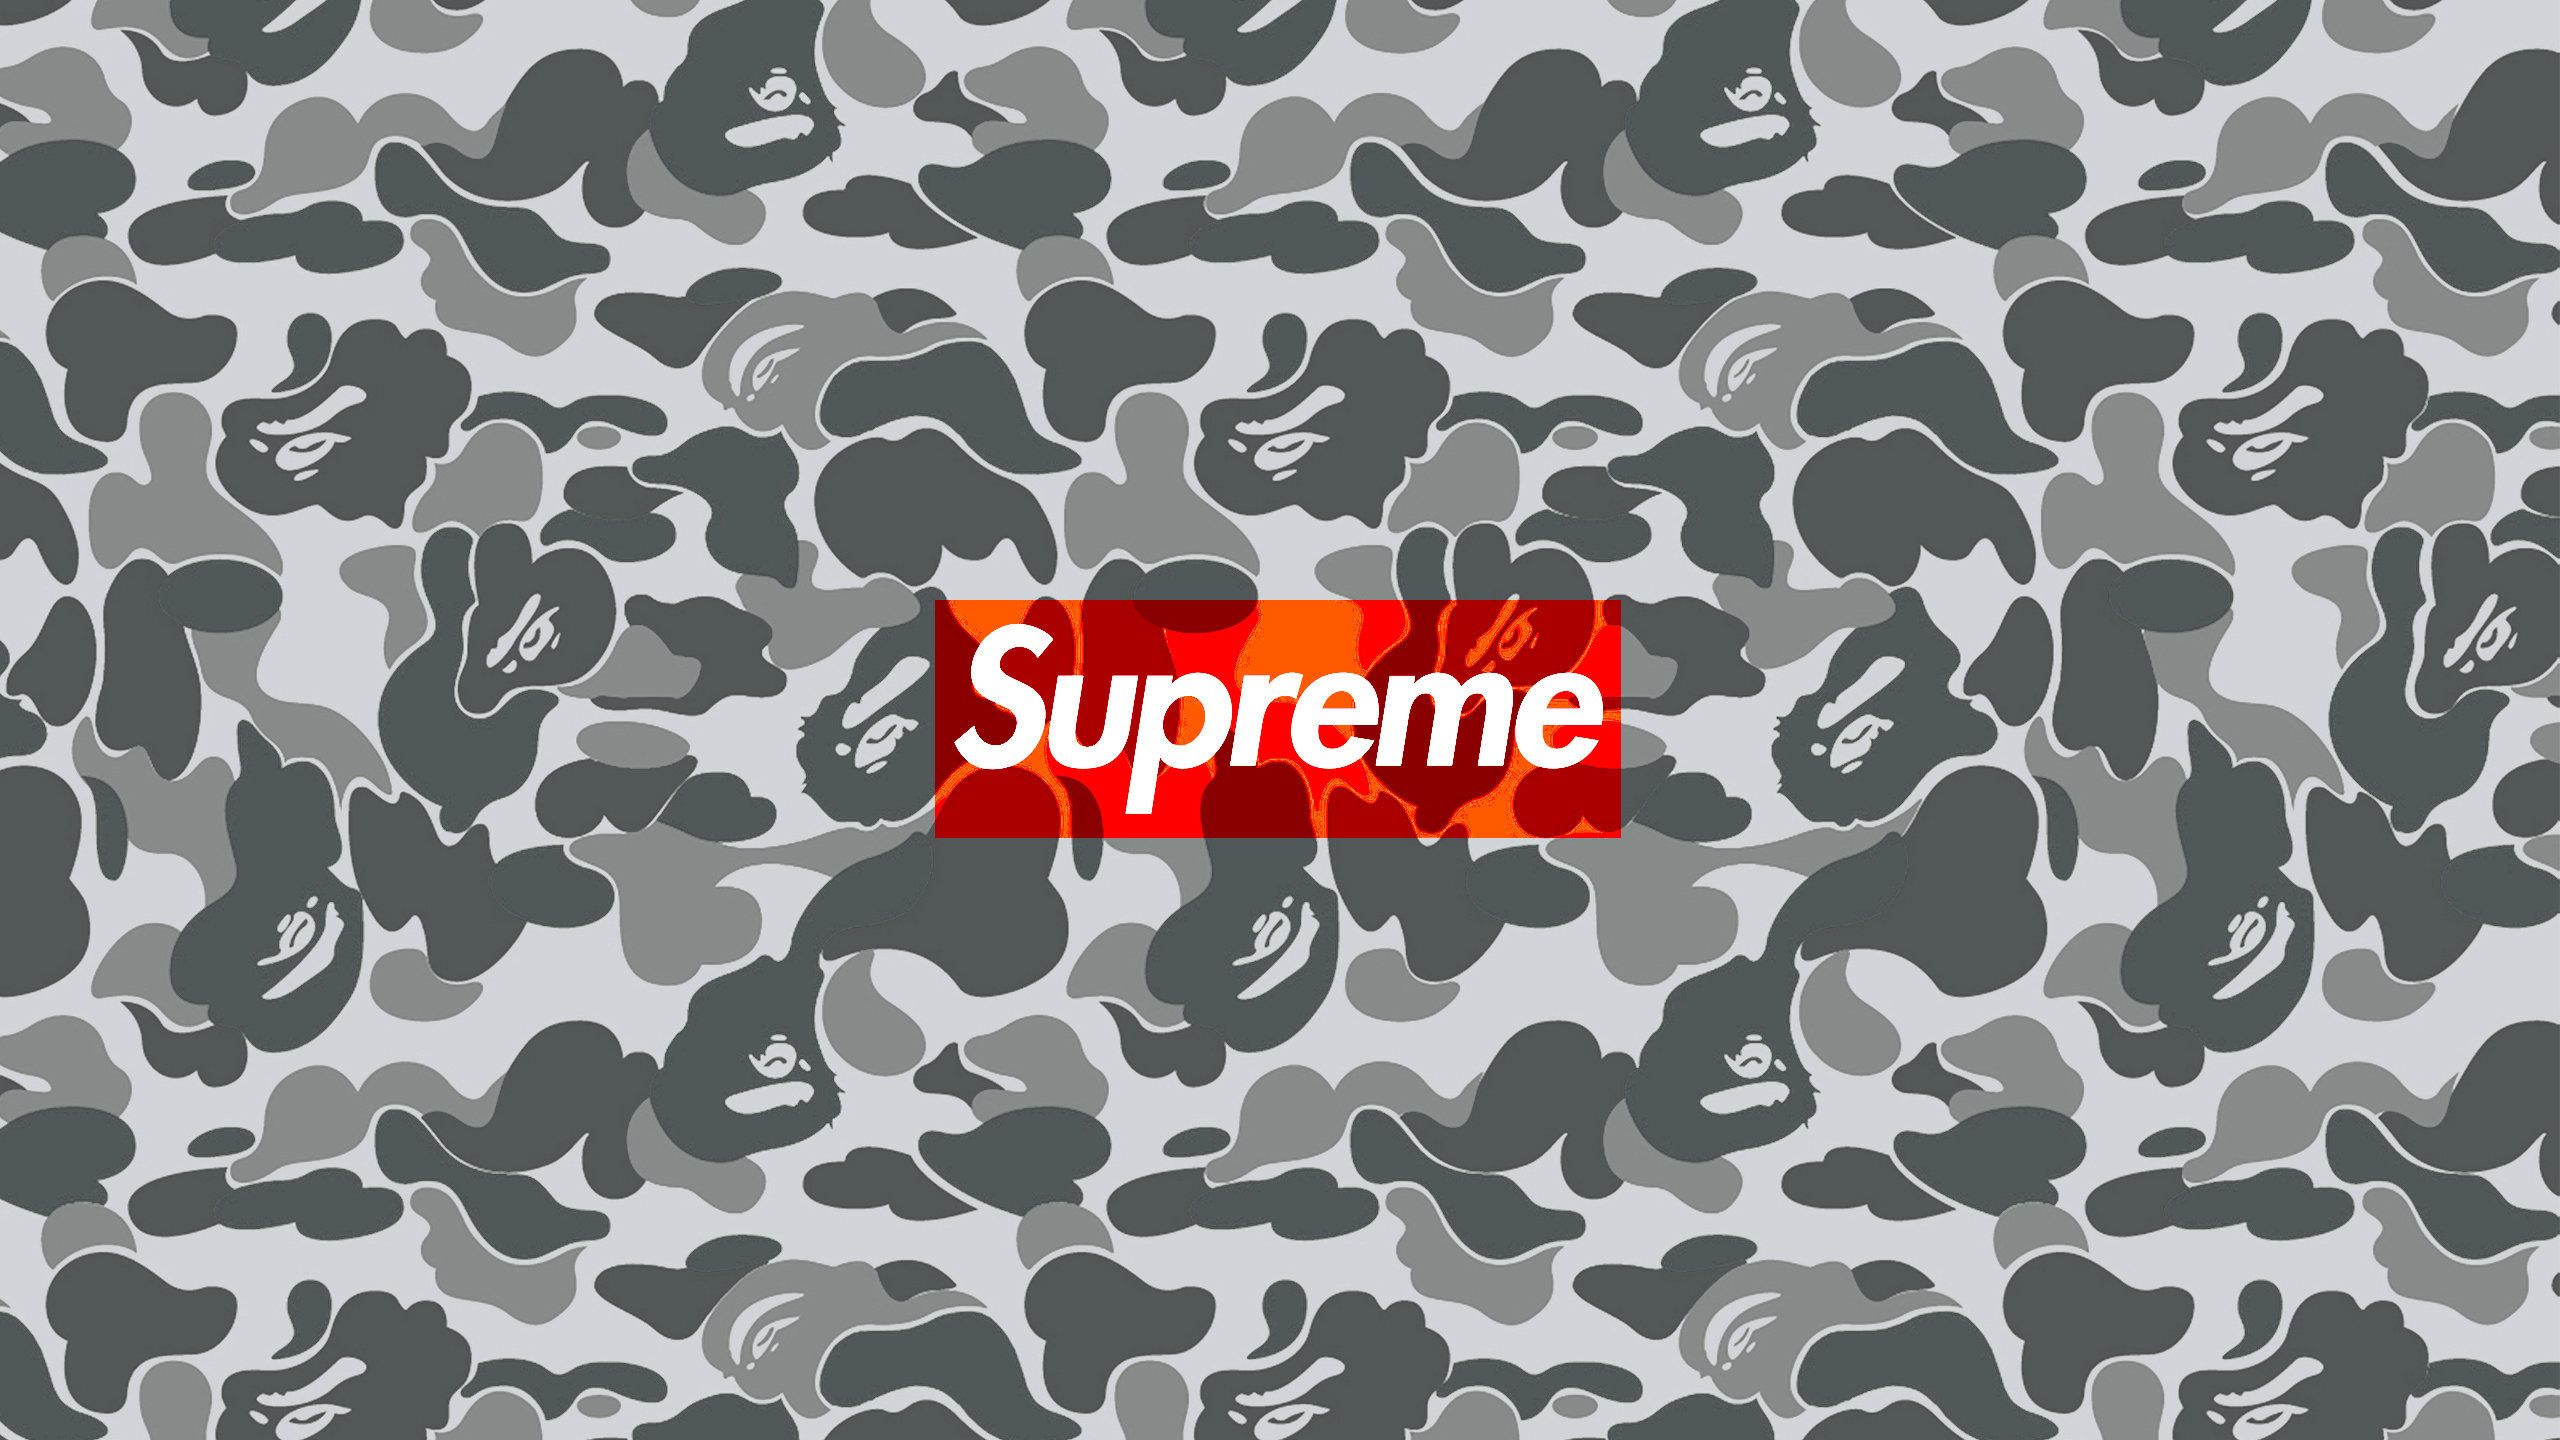 Download the Supreme Bape Camo wallpaper below for your mobile device  (Android phones, iPhone etc.)